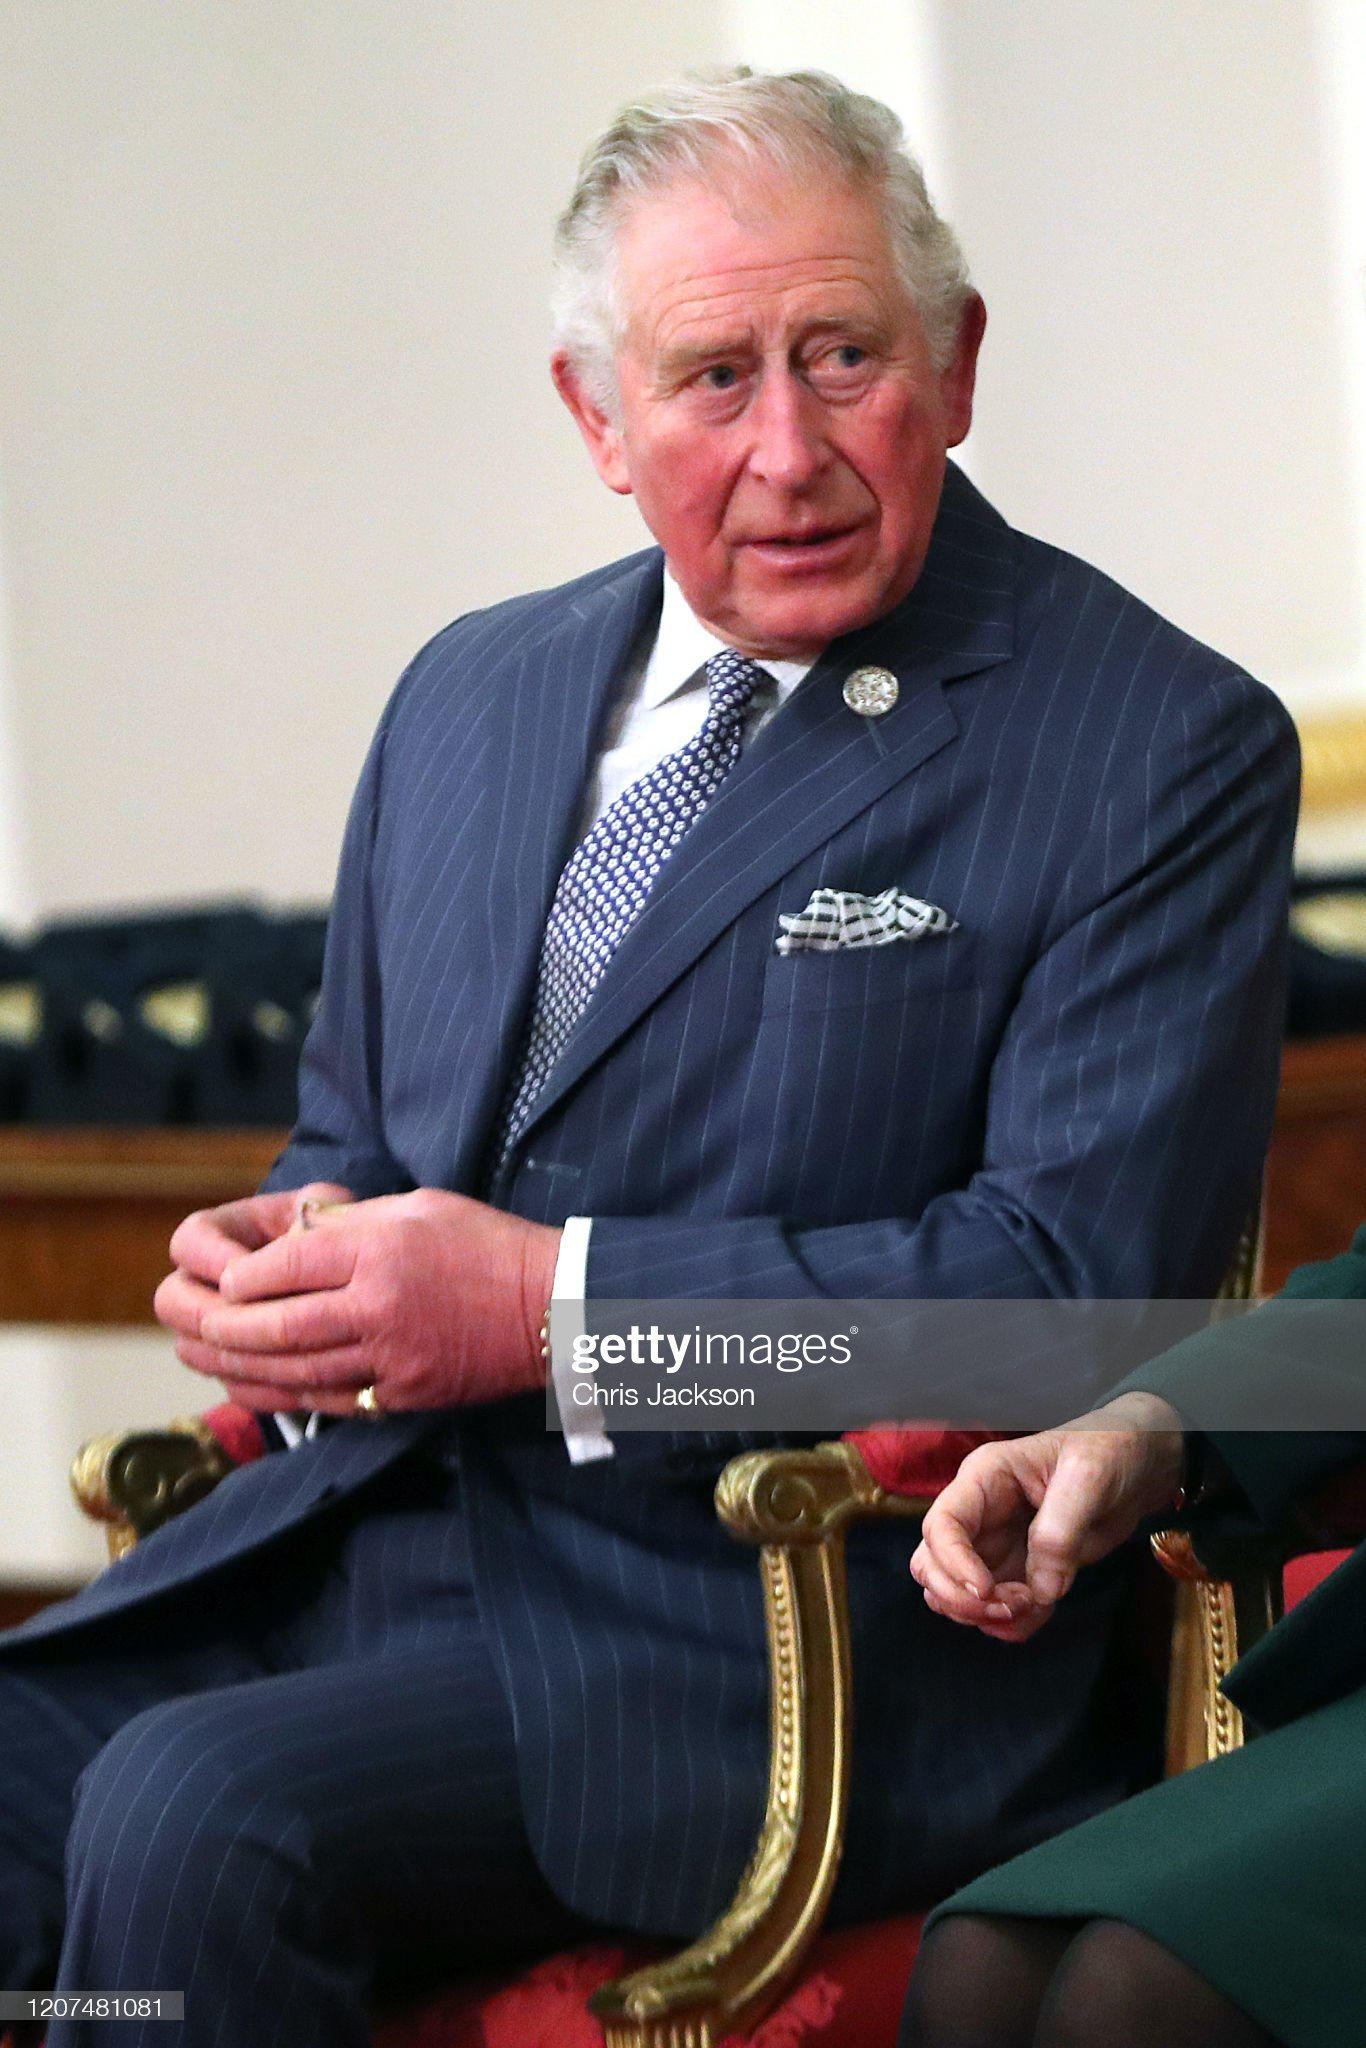 prince-charles-prince-of-wales-in-the-ballroom-during-the-the-queens-picture-id1207481081